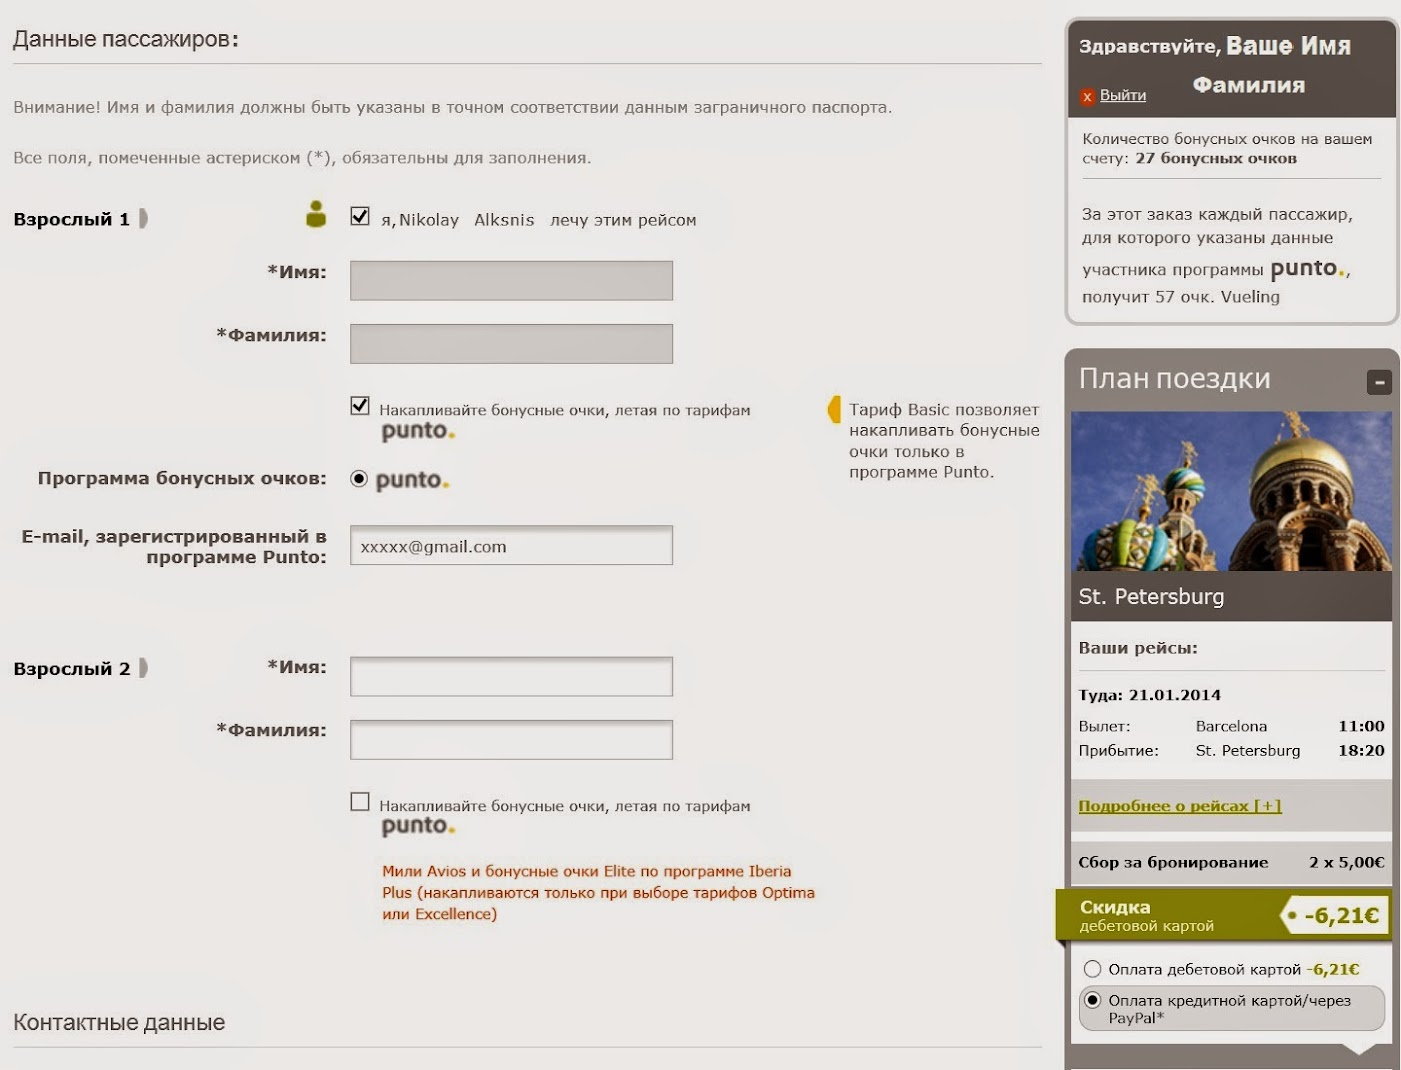 Check in online Vueling